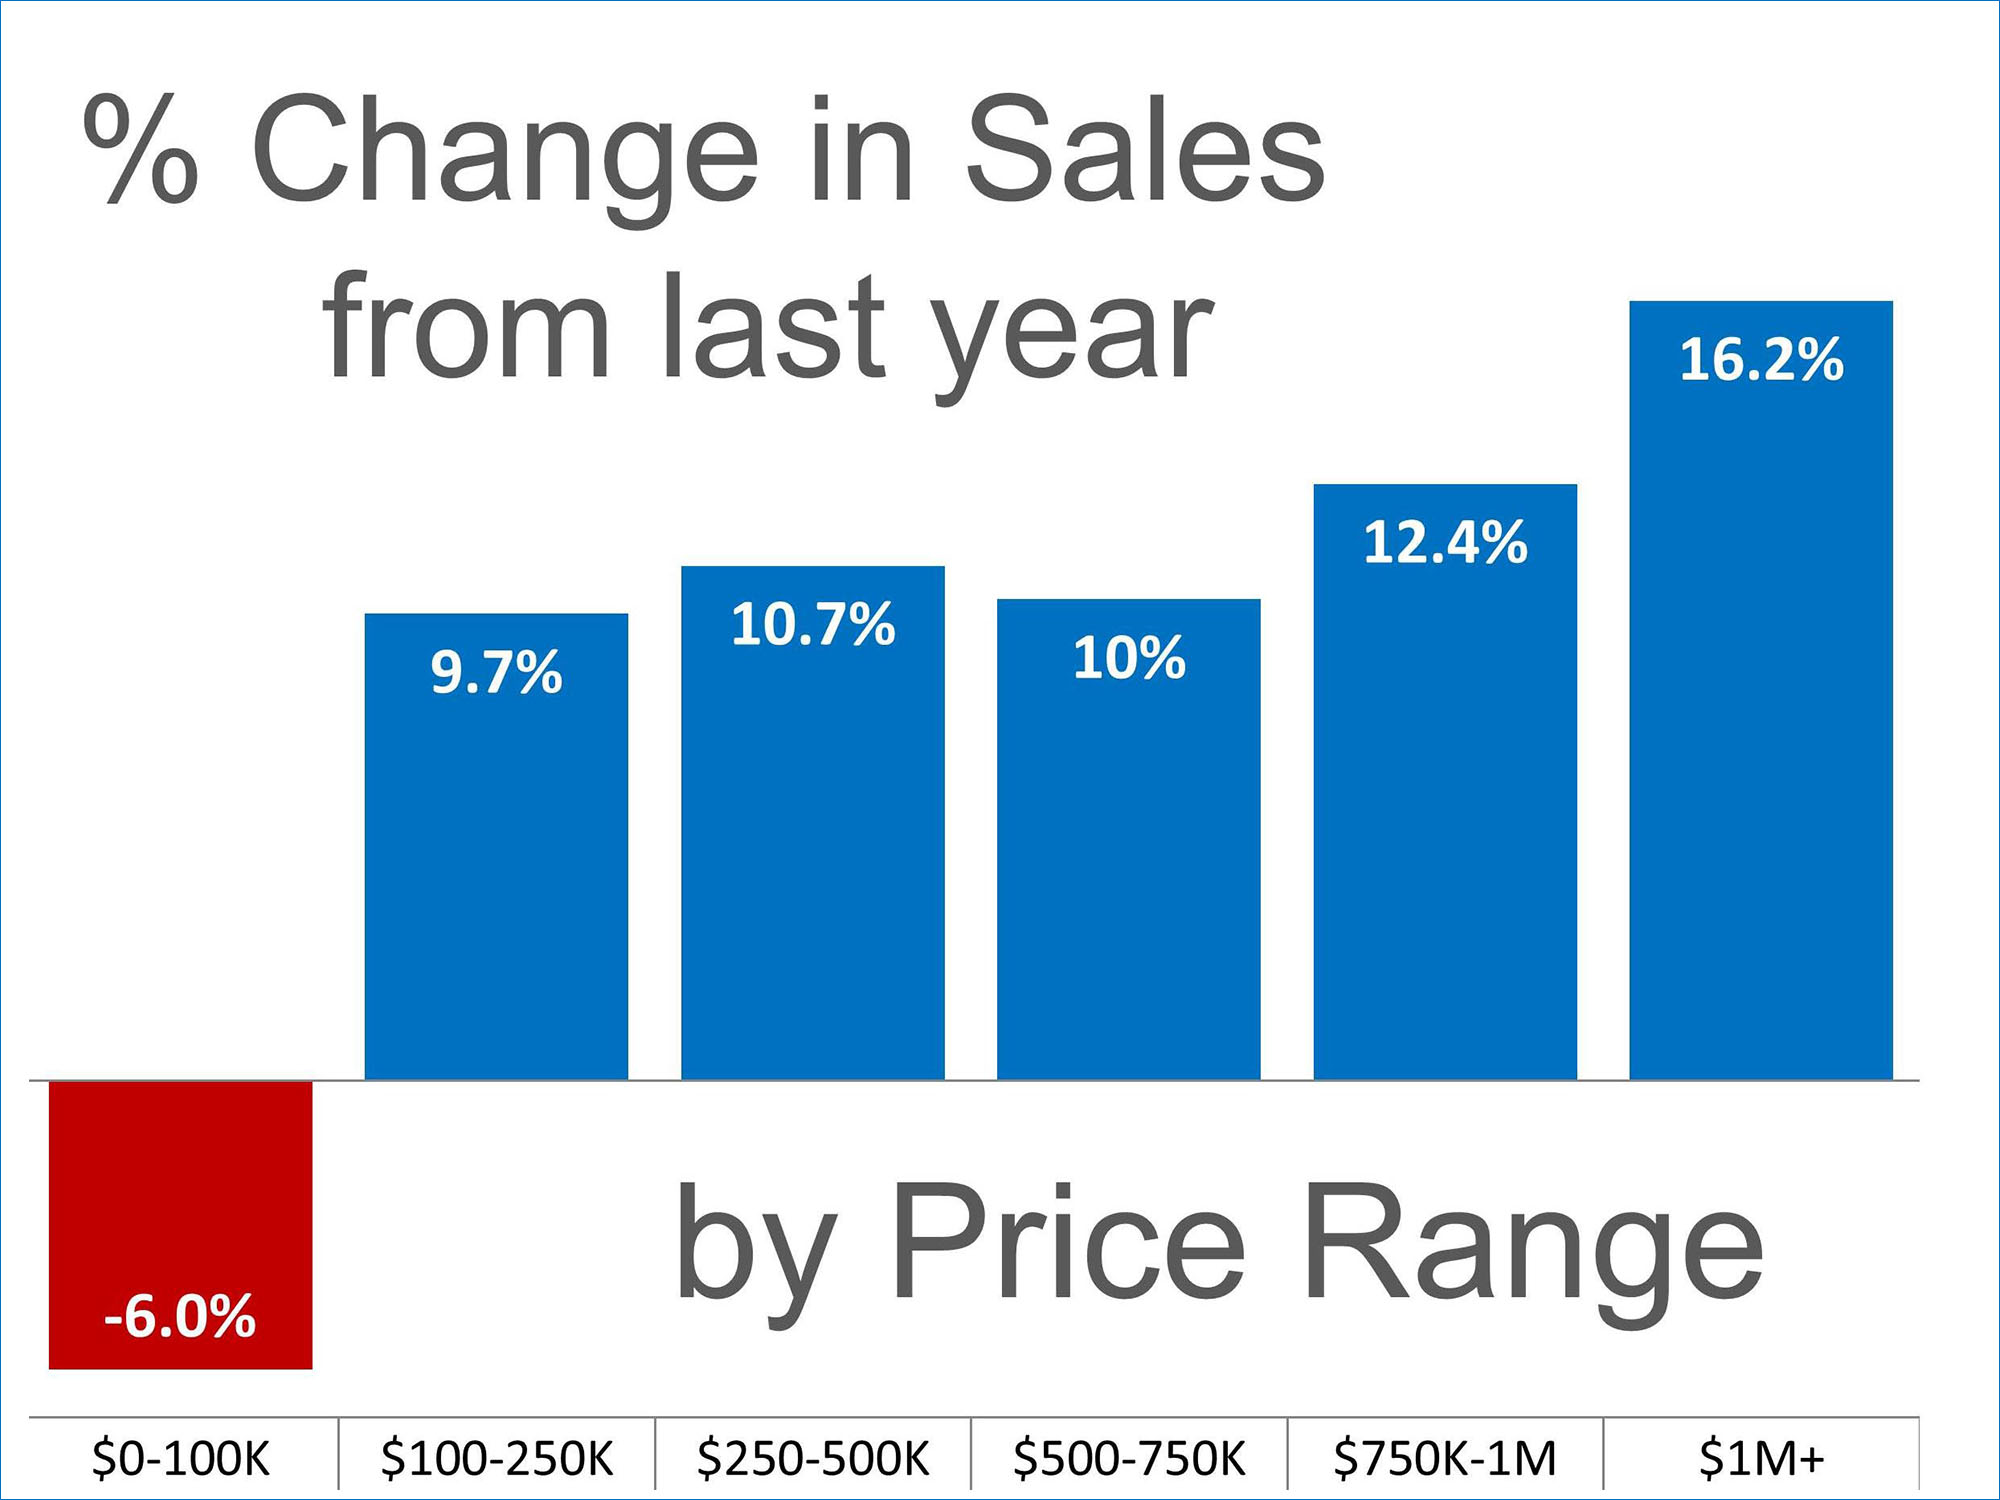 Sales Up in almost Every Price Range | Keeping Current Matters